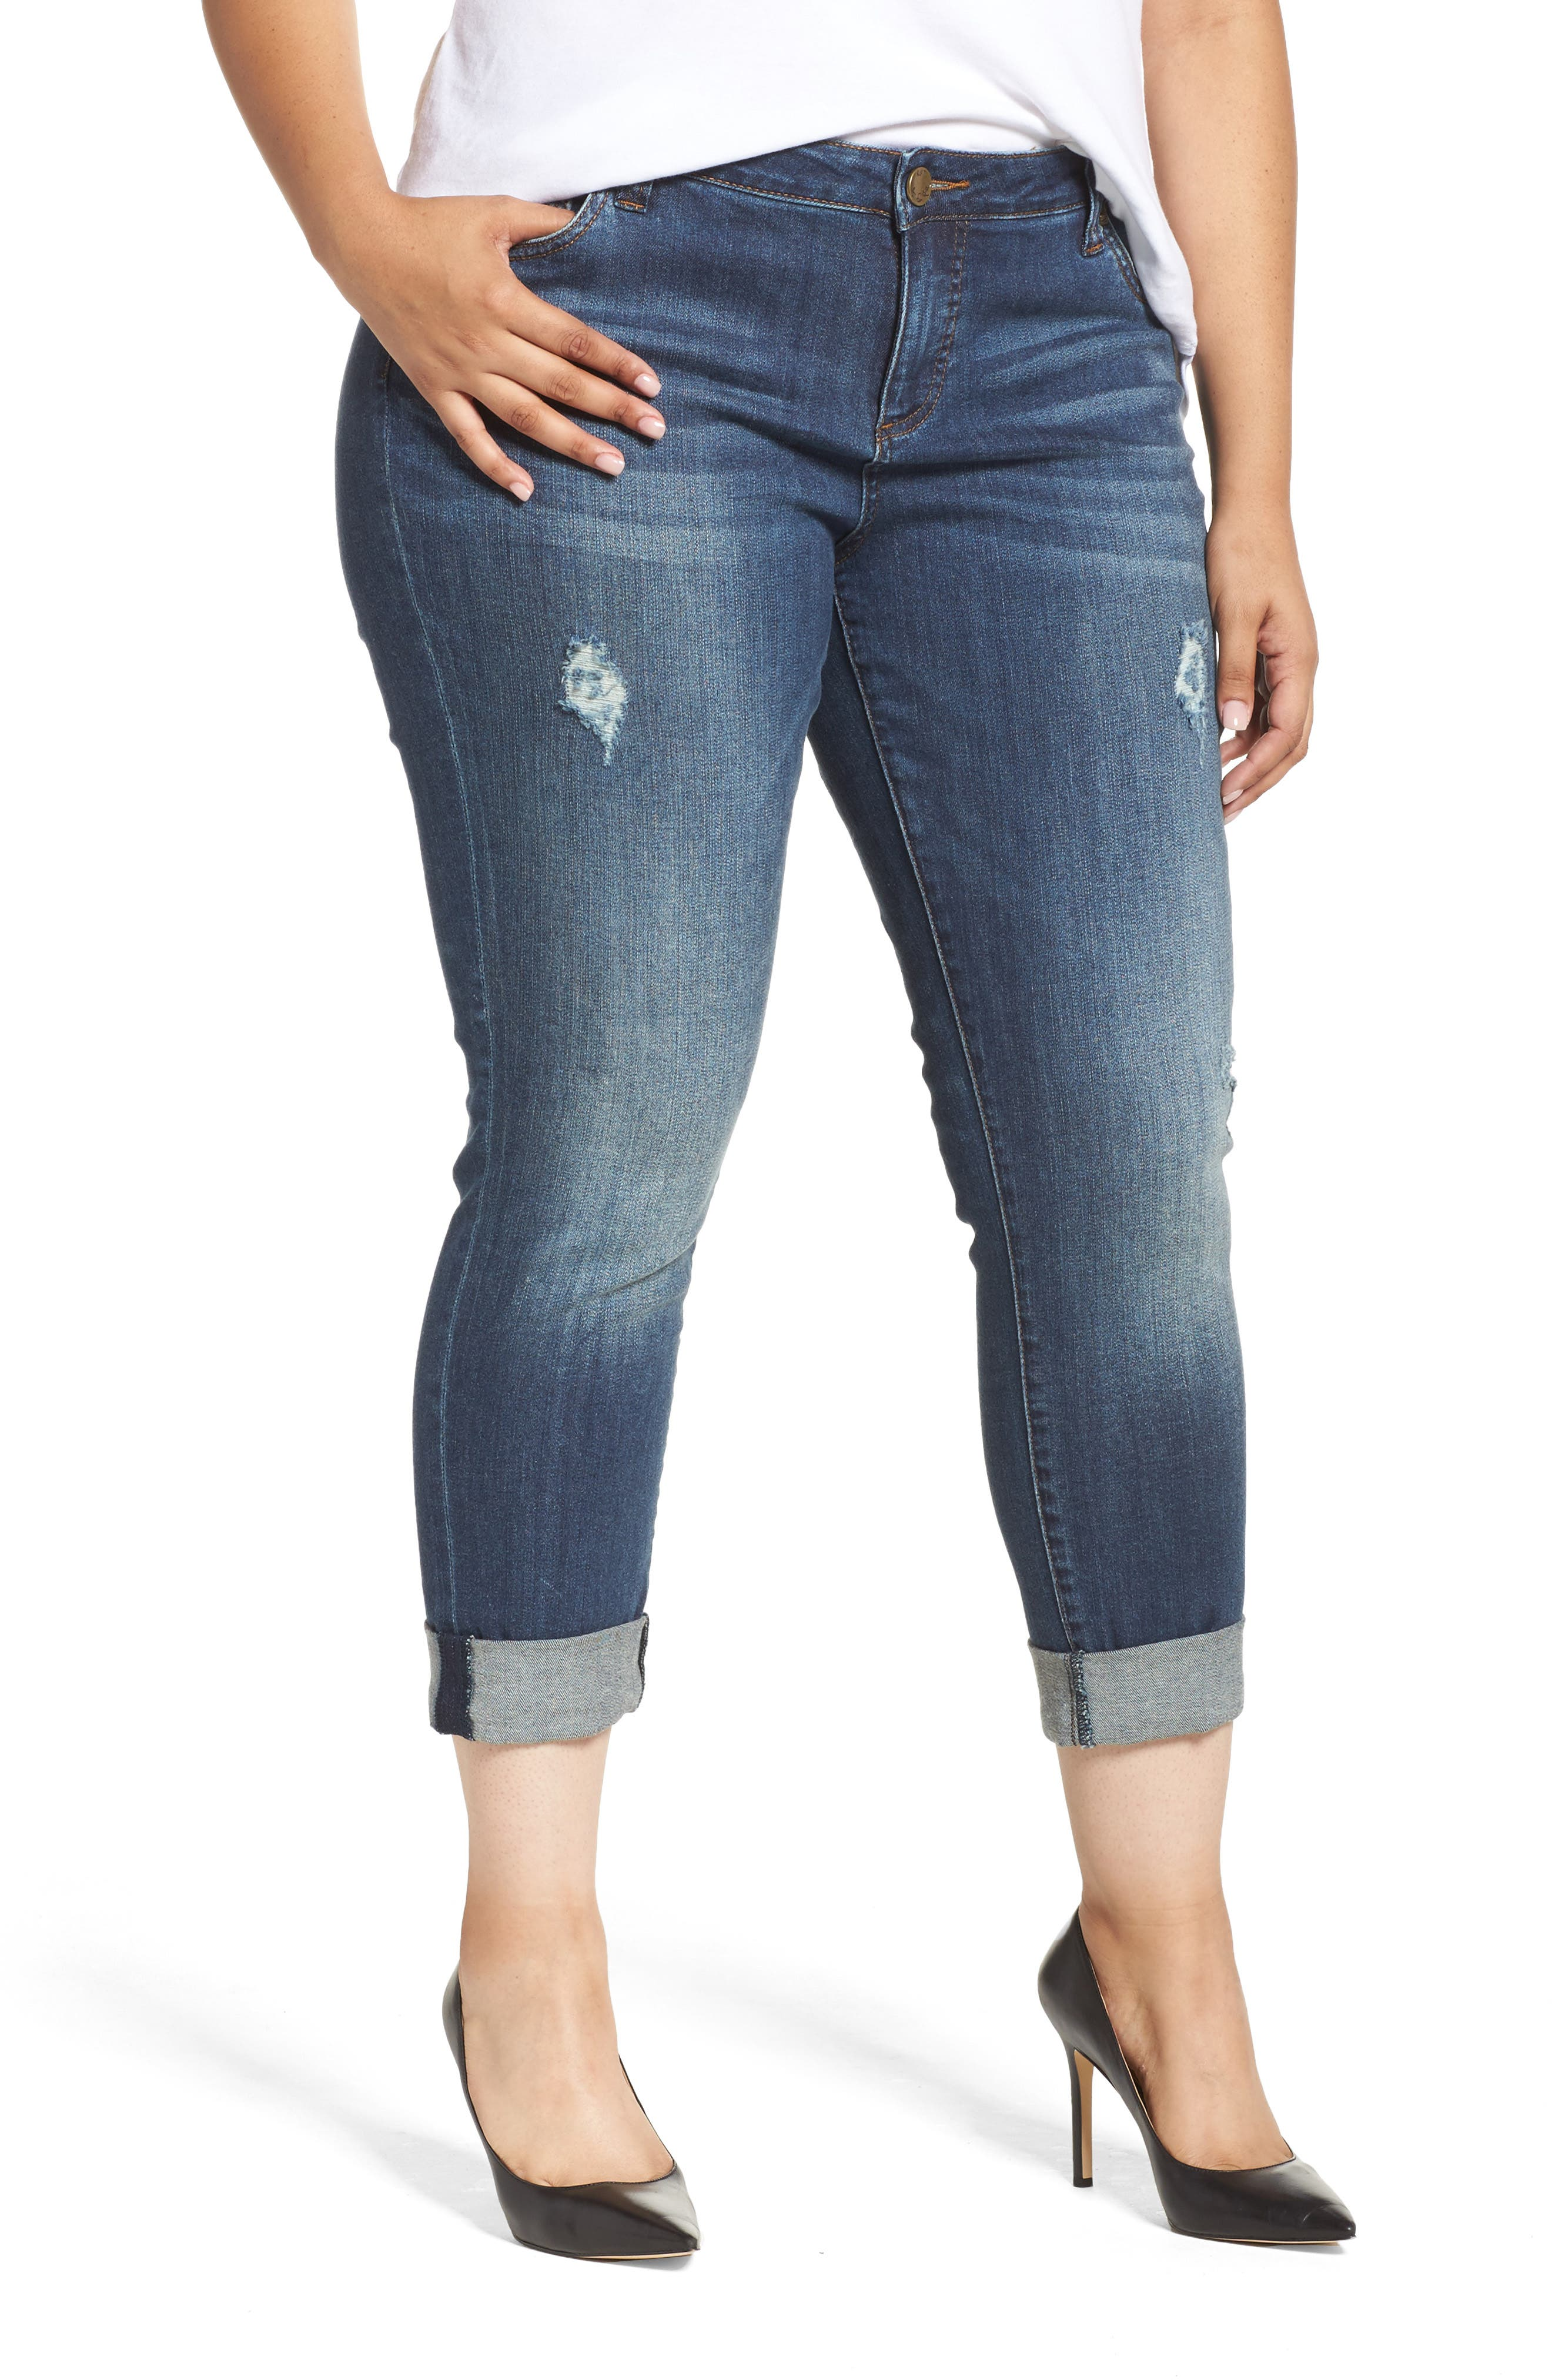 Catherine Ripped Boyfriend Jeans,                         Main,                         color, ALLOWING DARK STONE BASE WASH